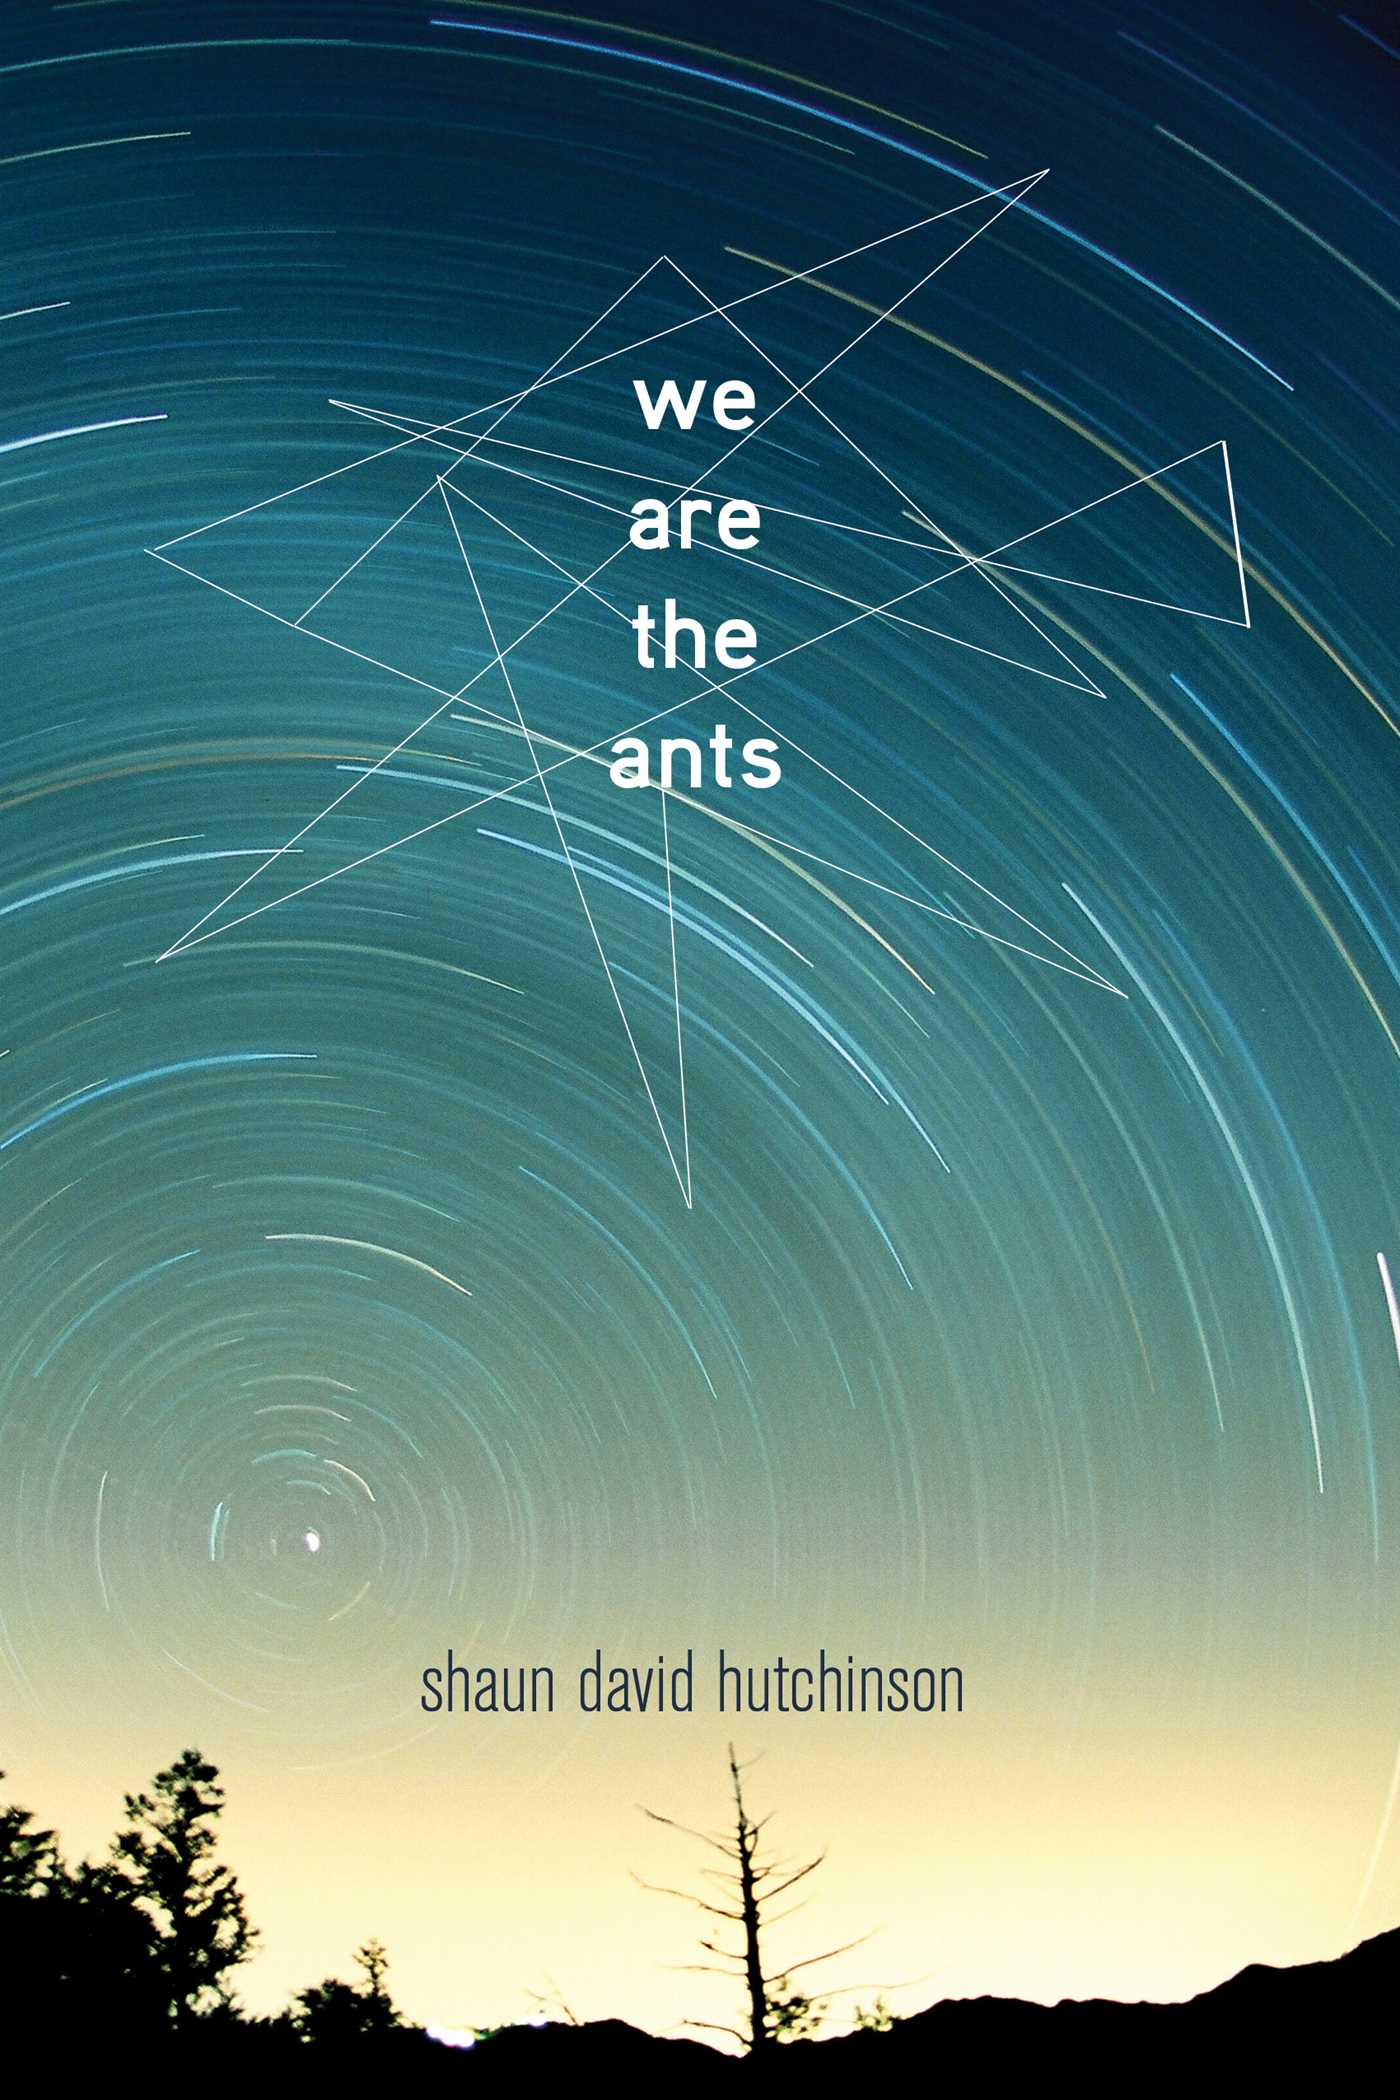 we-are-the-ants-9781481449649_hr.jpg